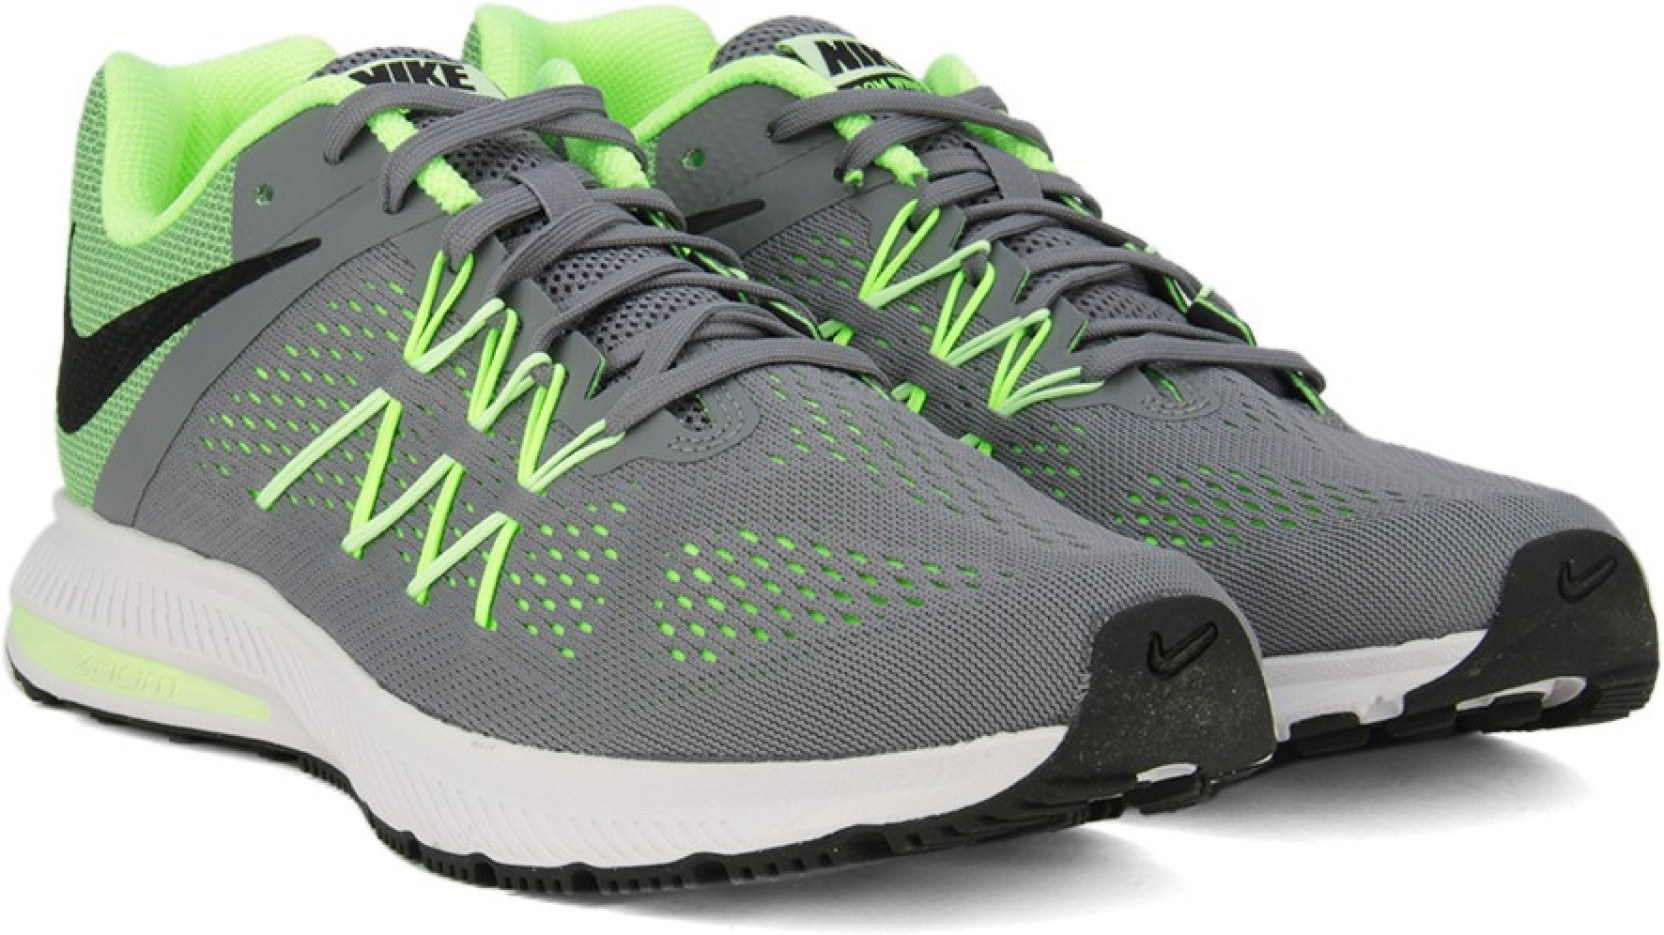 0d8bc4624608 ... shop nike zoom winflo 3 running shoes for men green grey 8dbe0 2785f